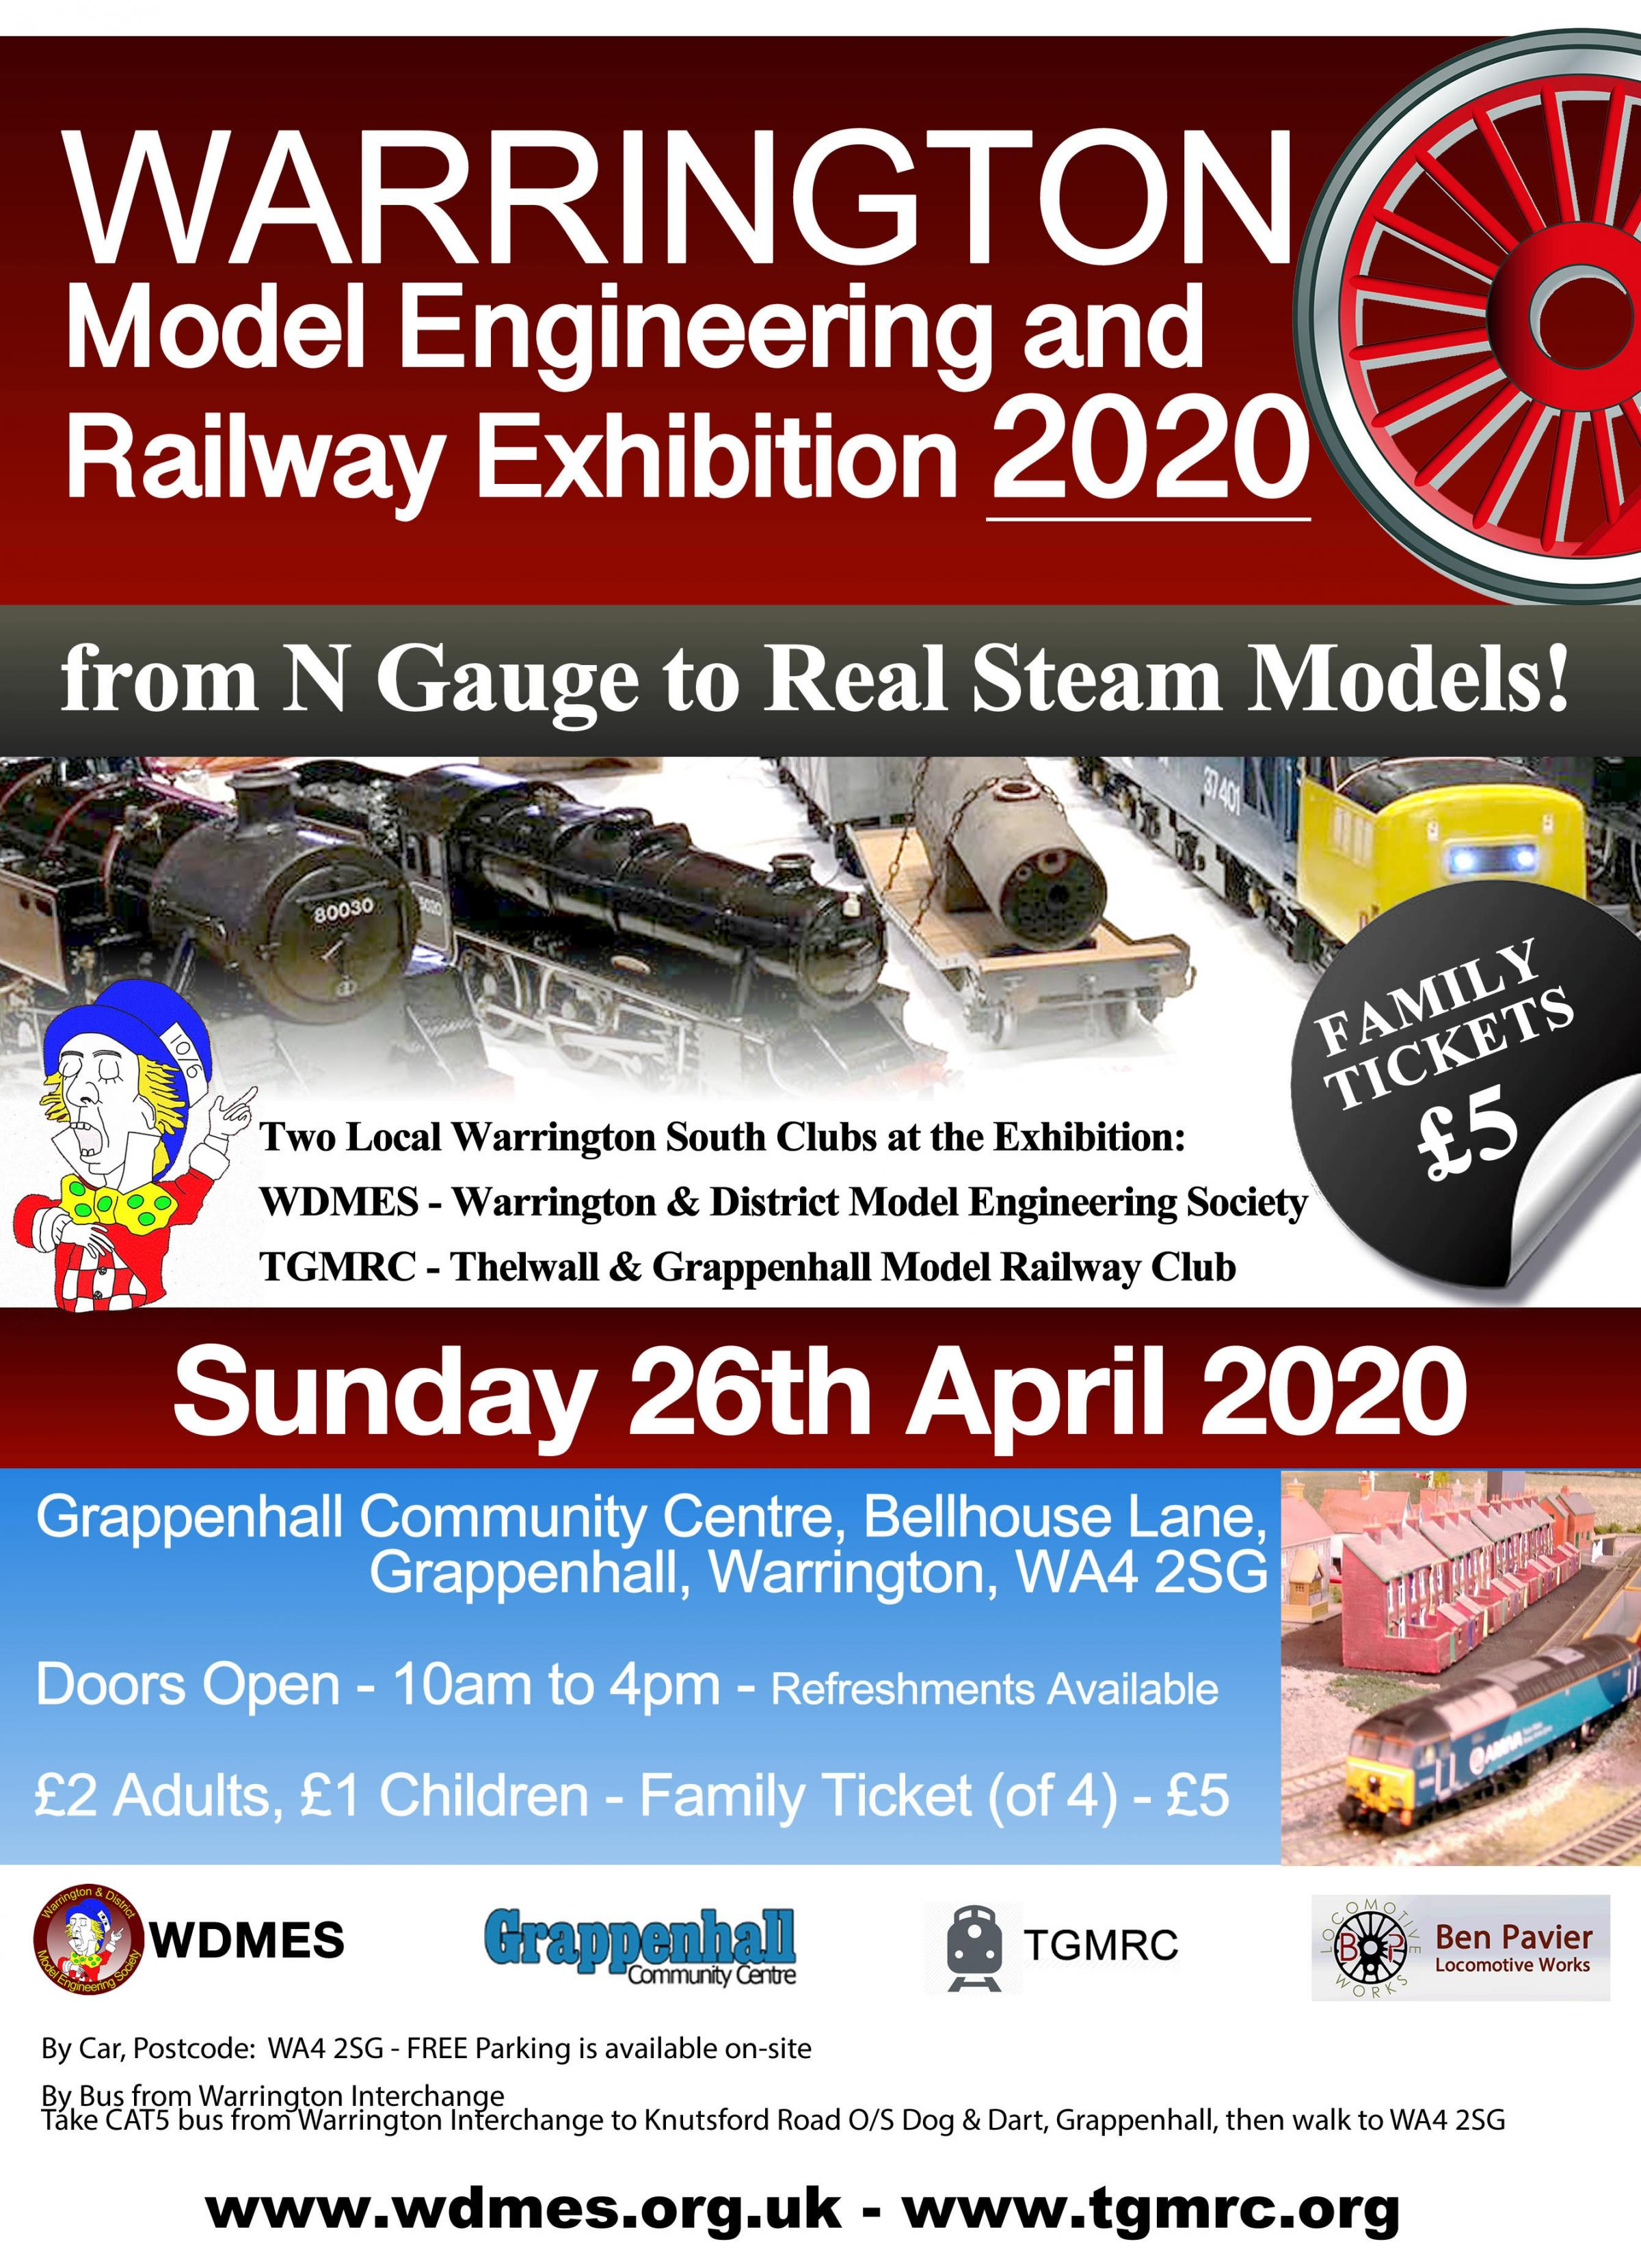 Warrington Model Engineering and Railway Exhibition 2020